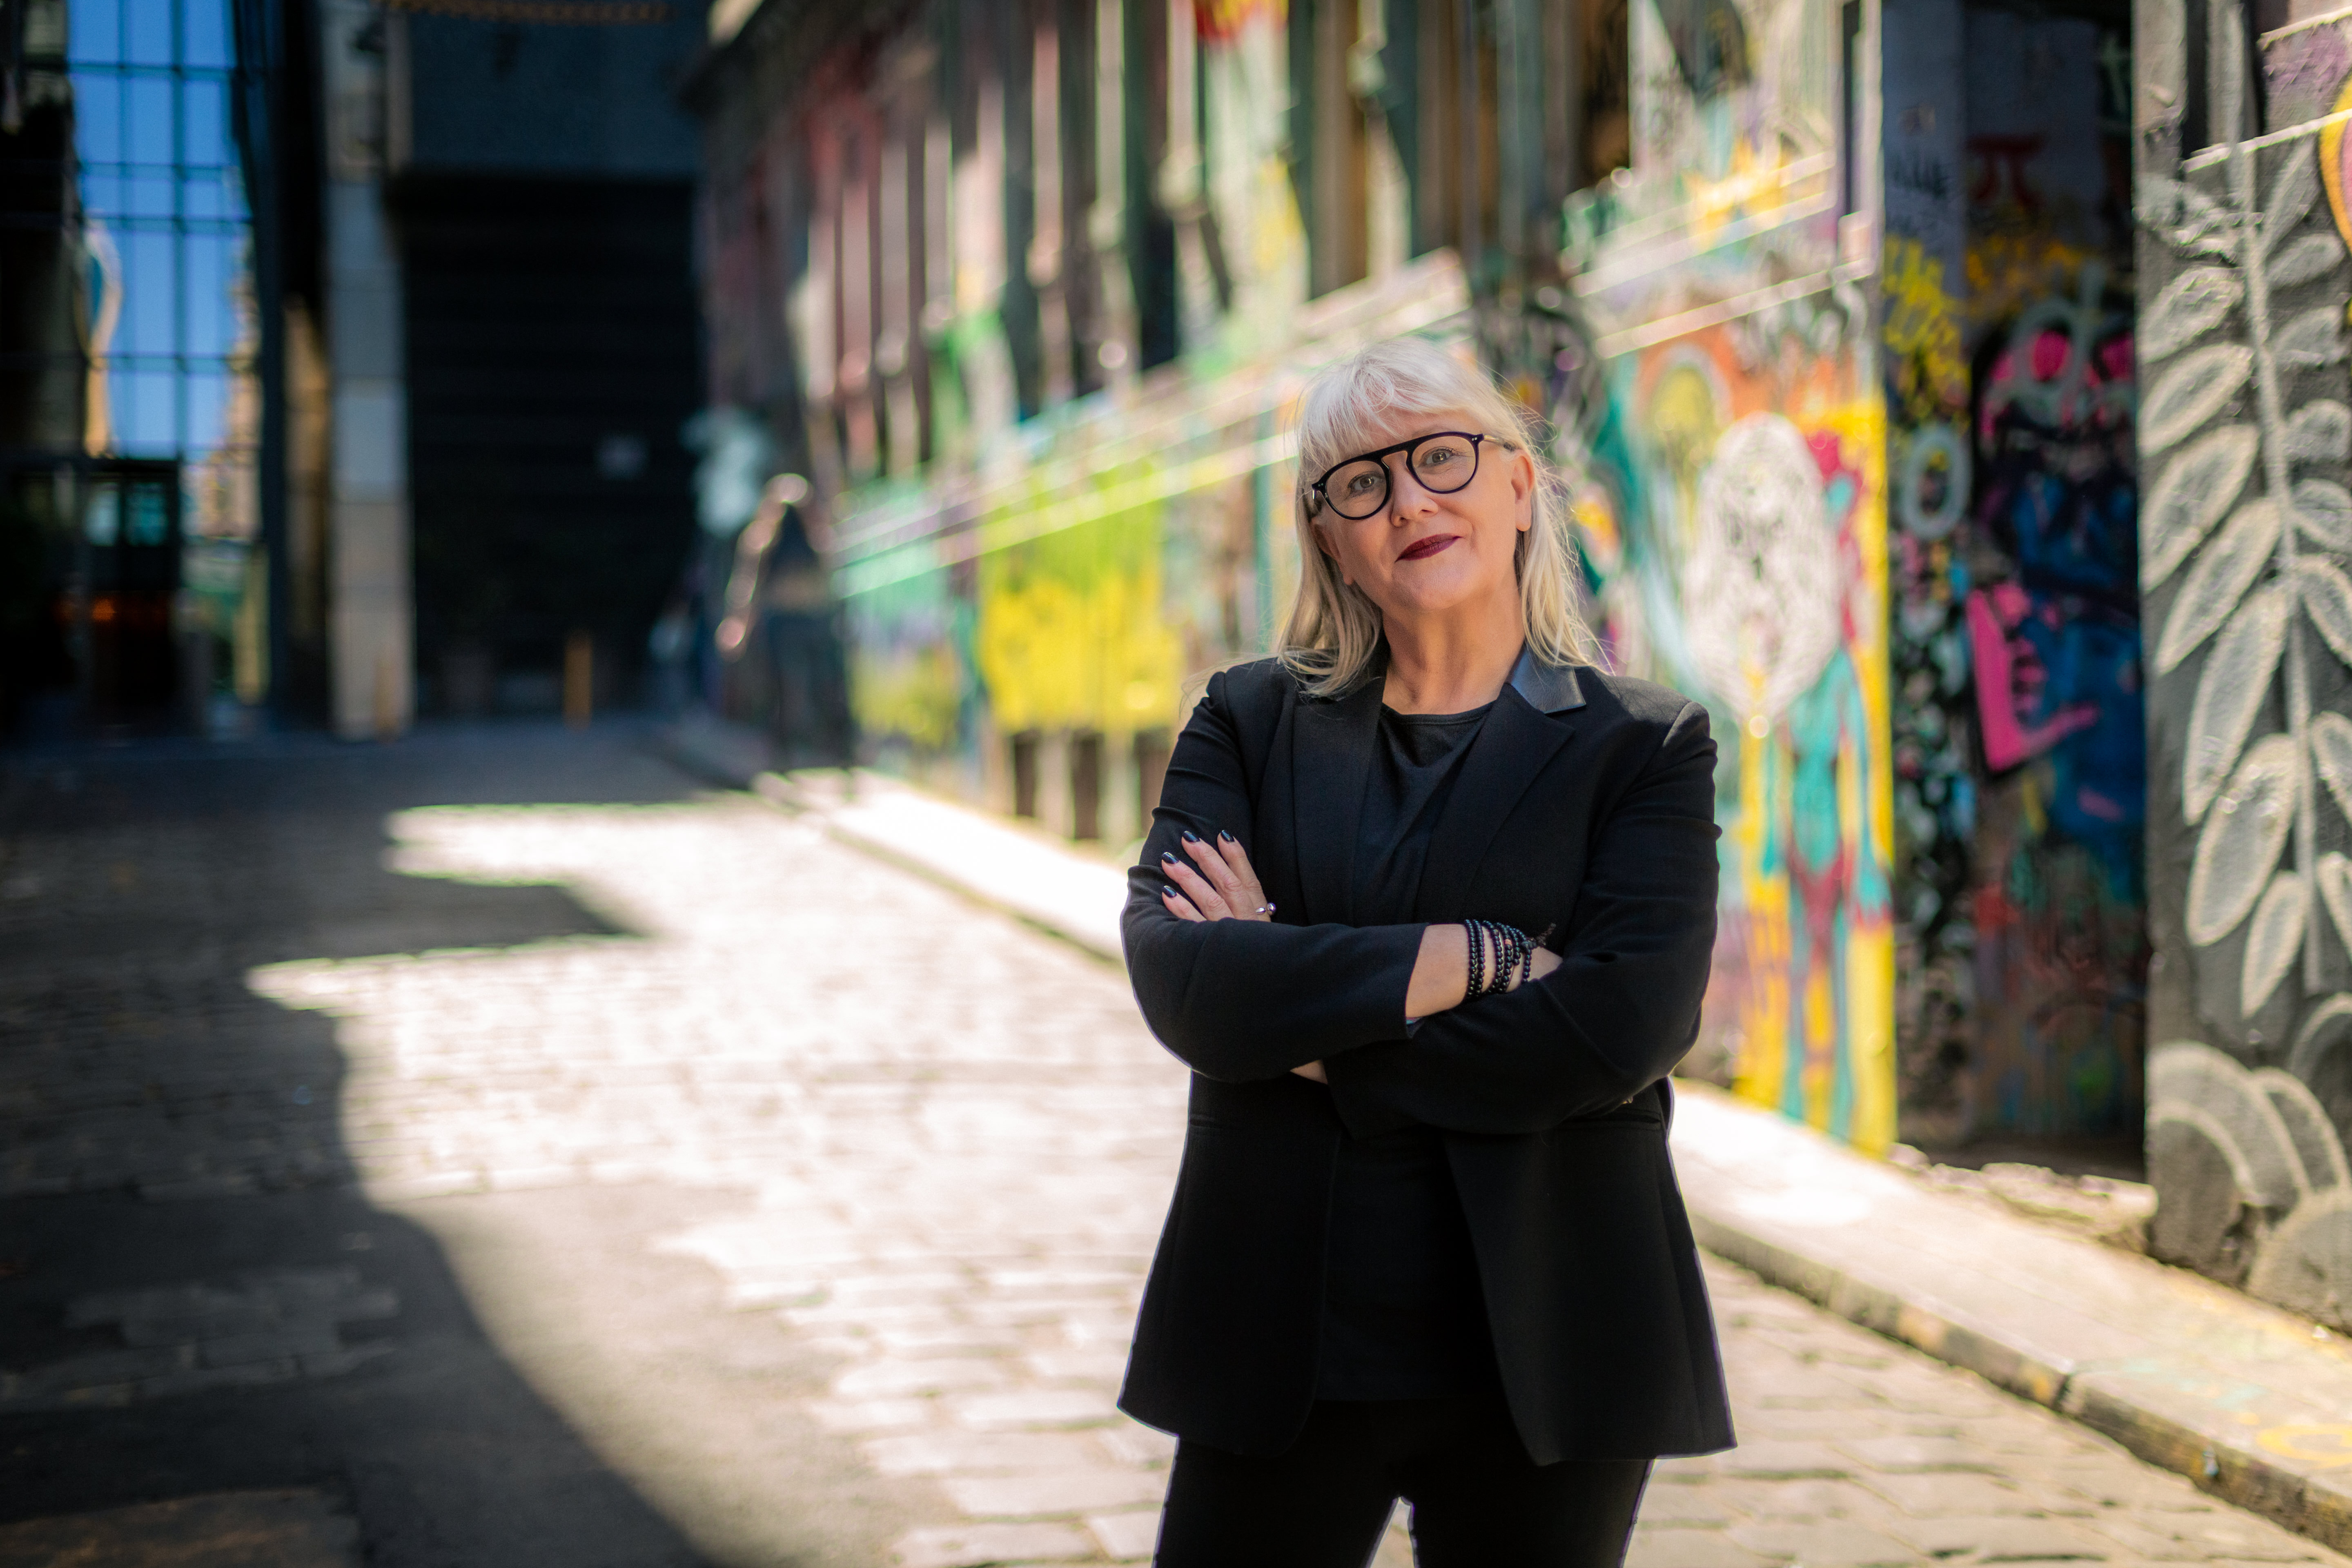 Janine Hendry, of Melbourne, started the March 4 Justice Facebook group calling on women to protest against sexual harassment and sexual assault at Australia's parliament on March 15. Some 30,000 people have joined the group.